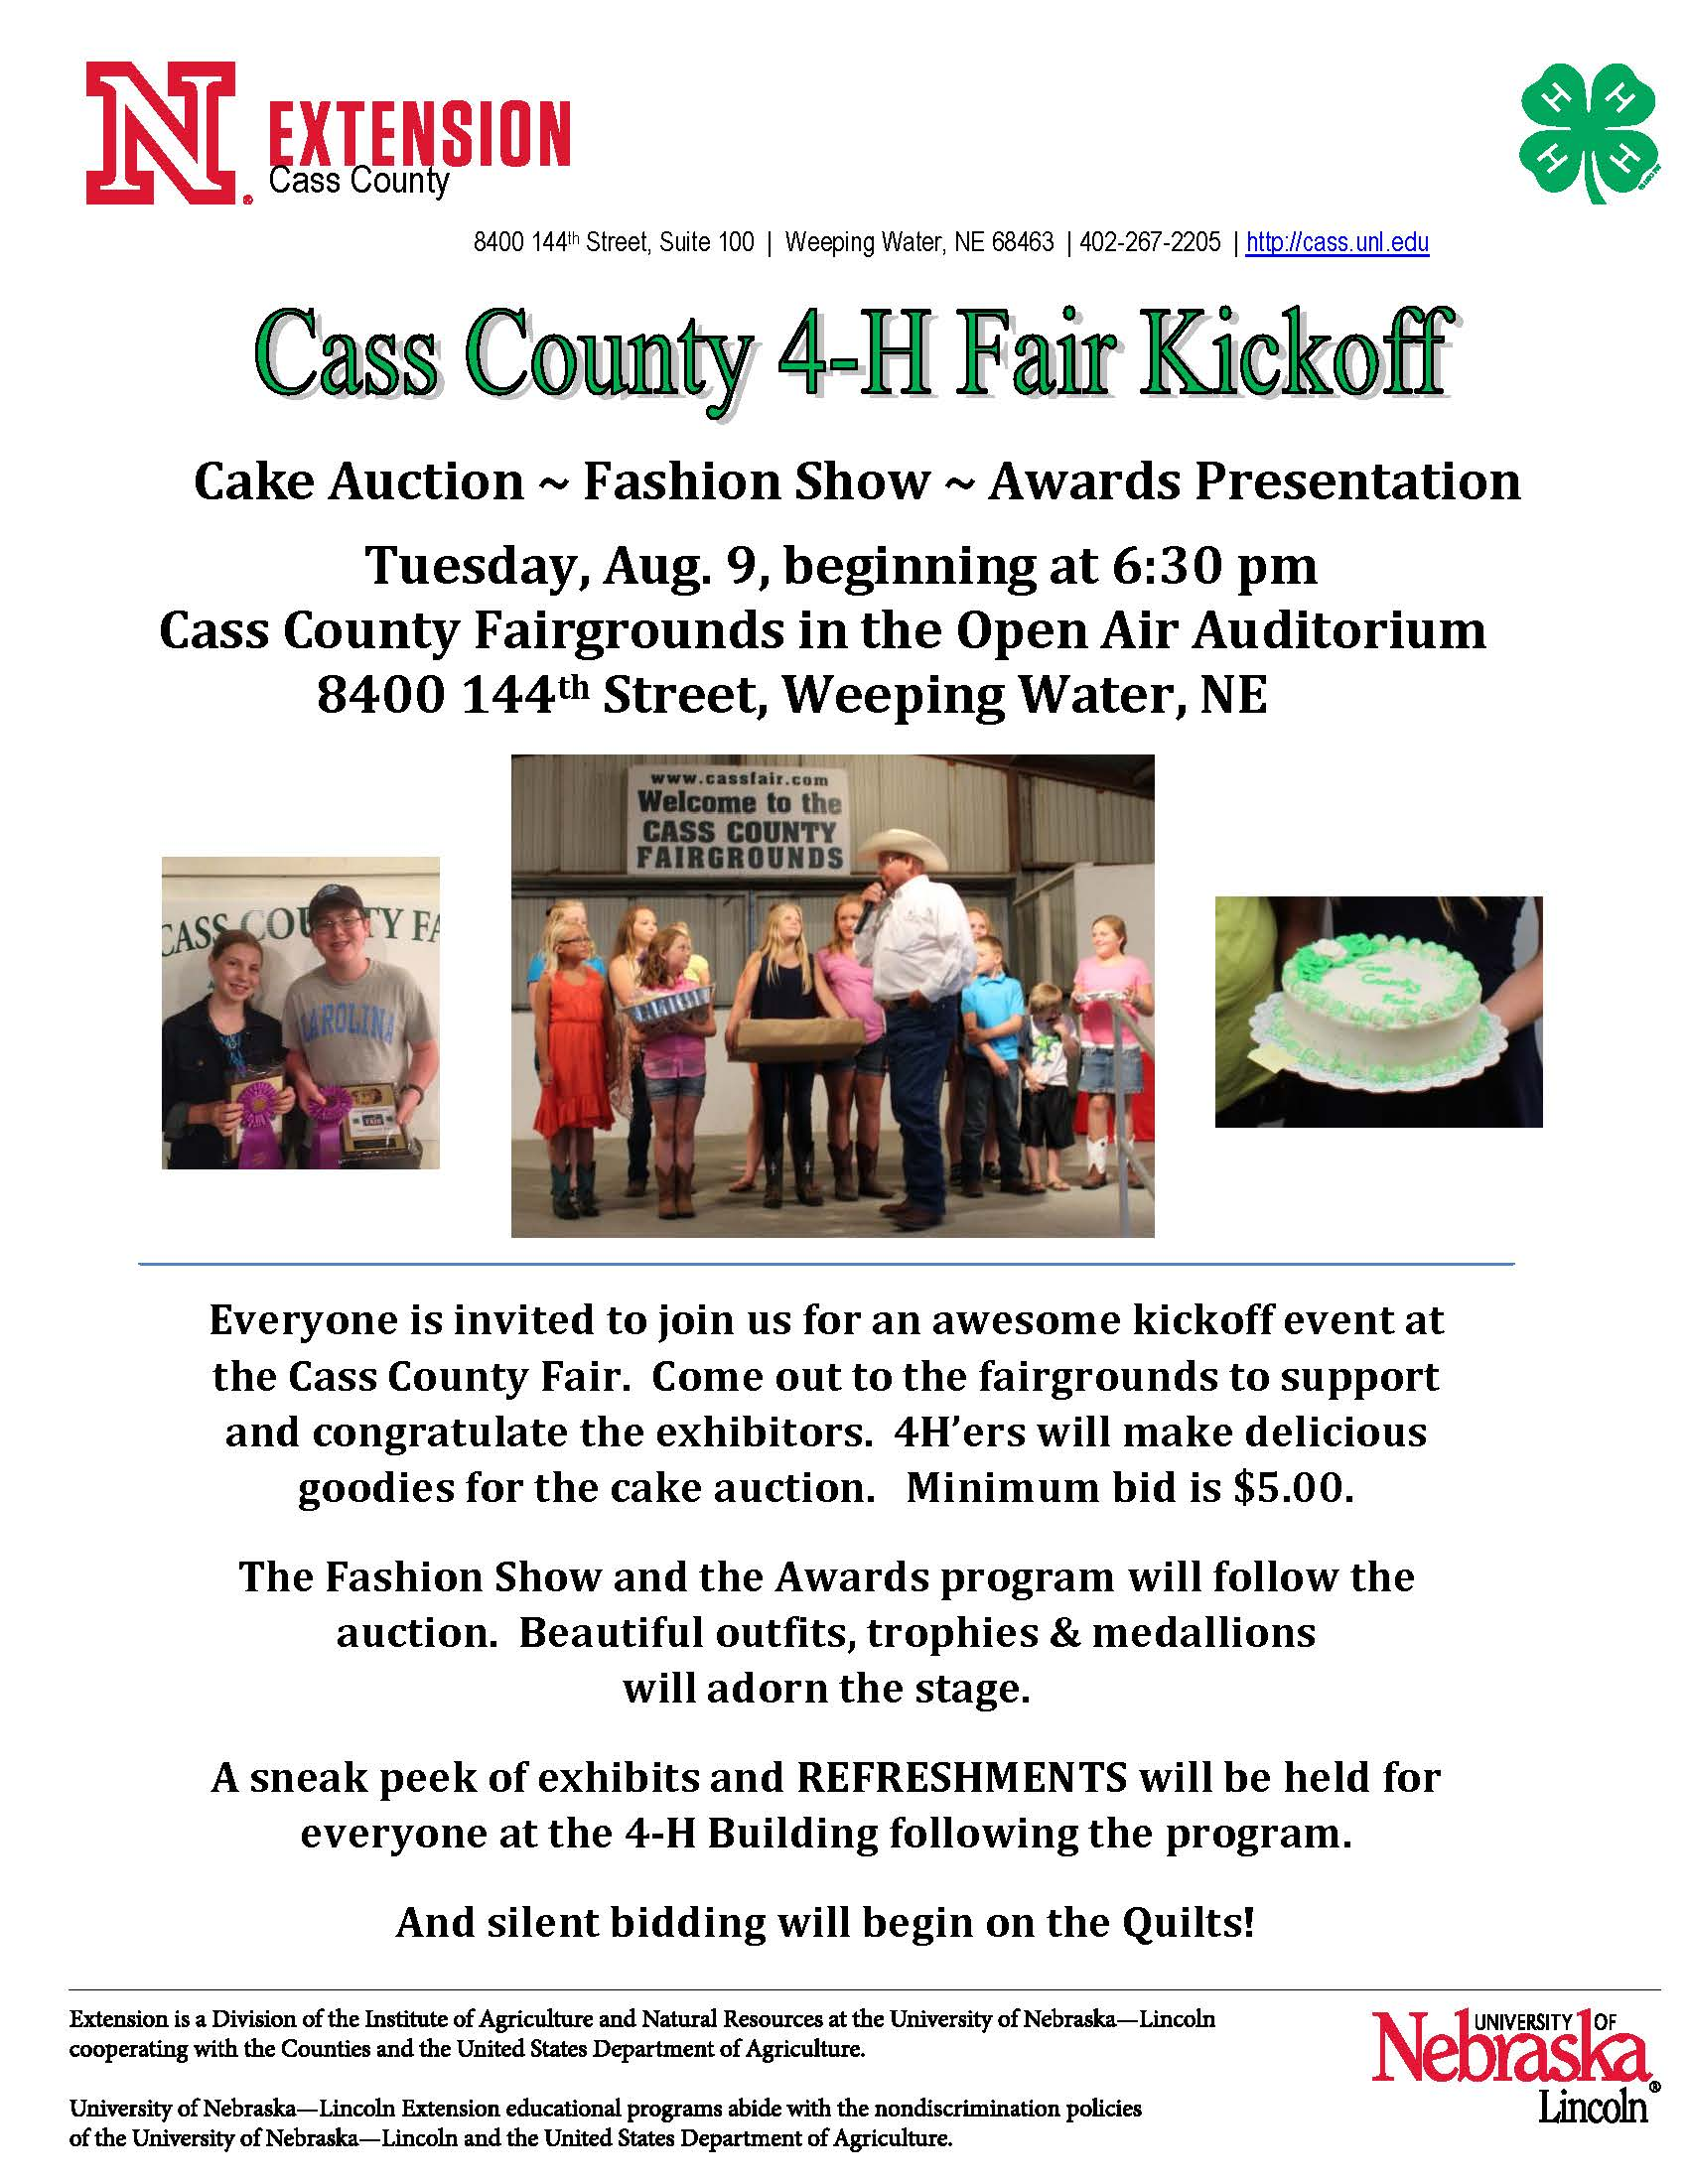 2016 Fair Kickoff Event poster and flyer Page 2